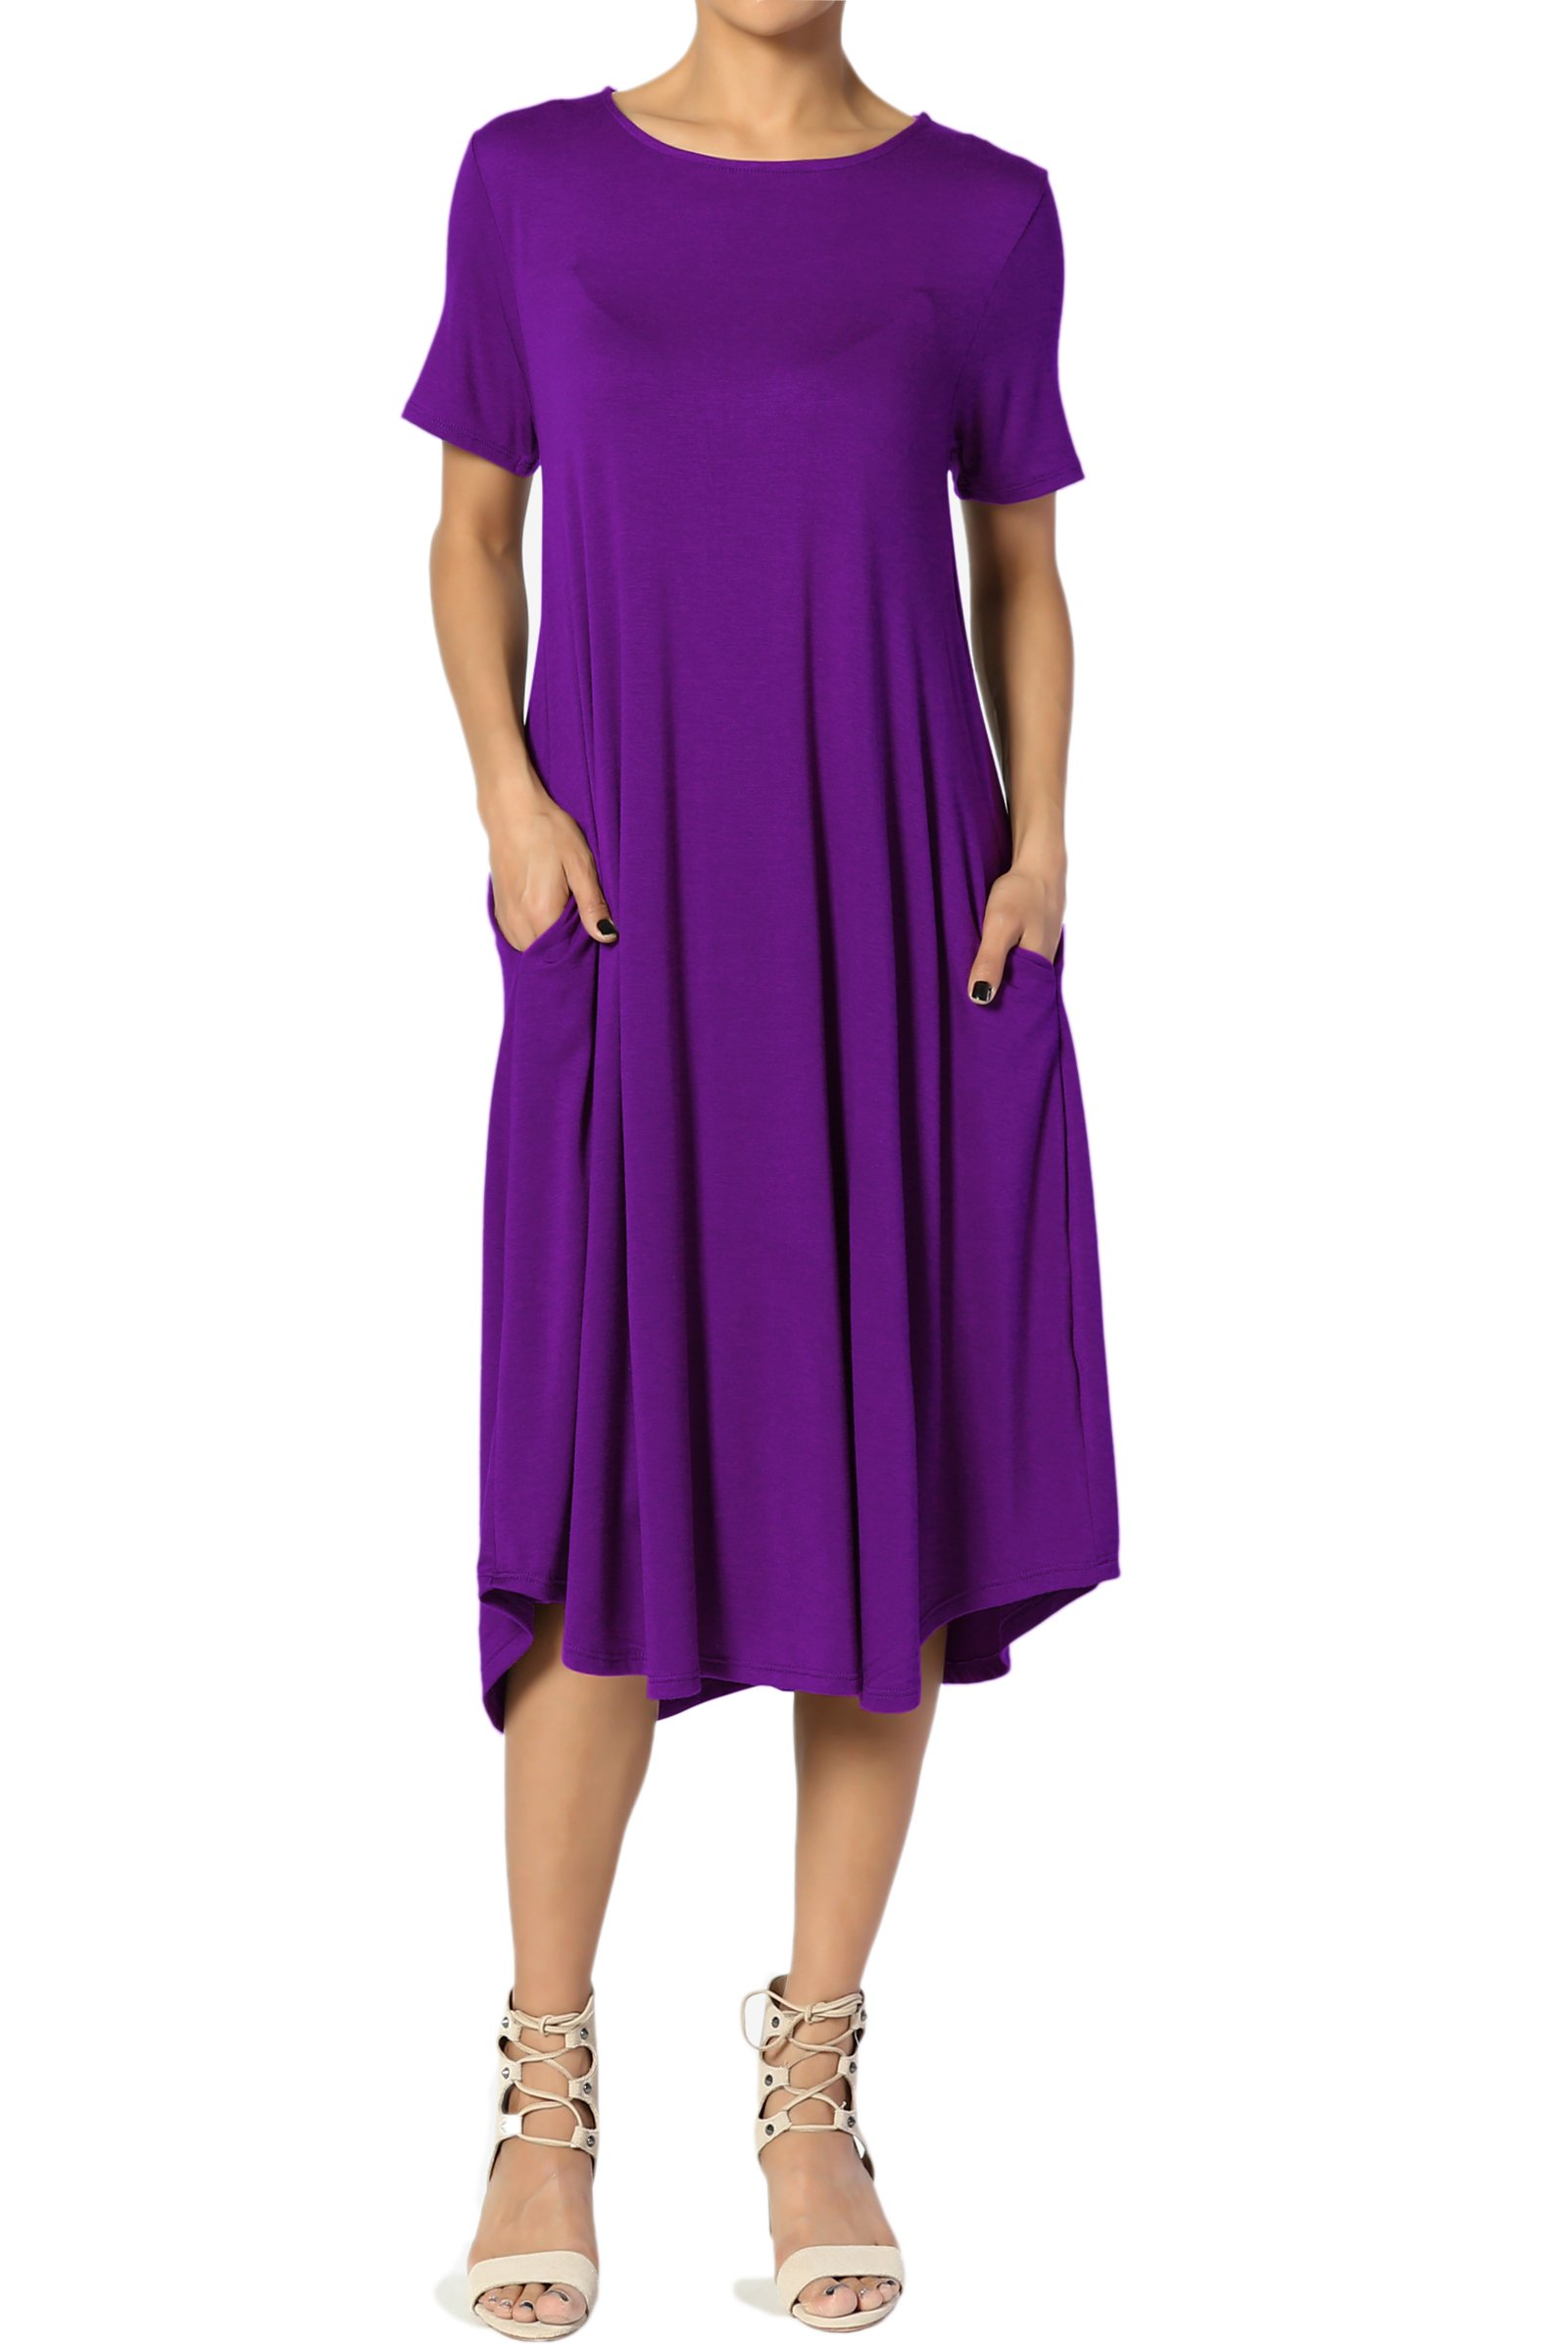 TheMogan Women's Short Sleeve Pocket A-line Fit and Flare Midi Dress Purple 3XL